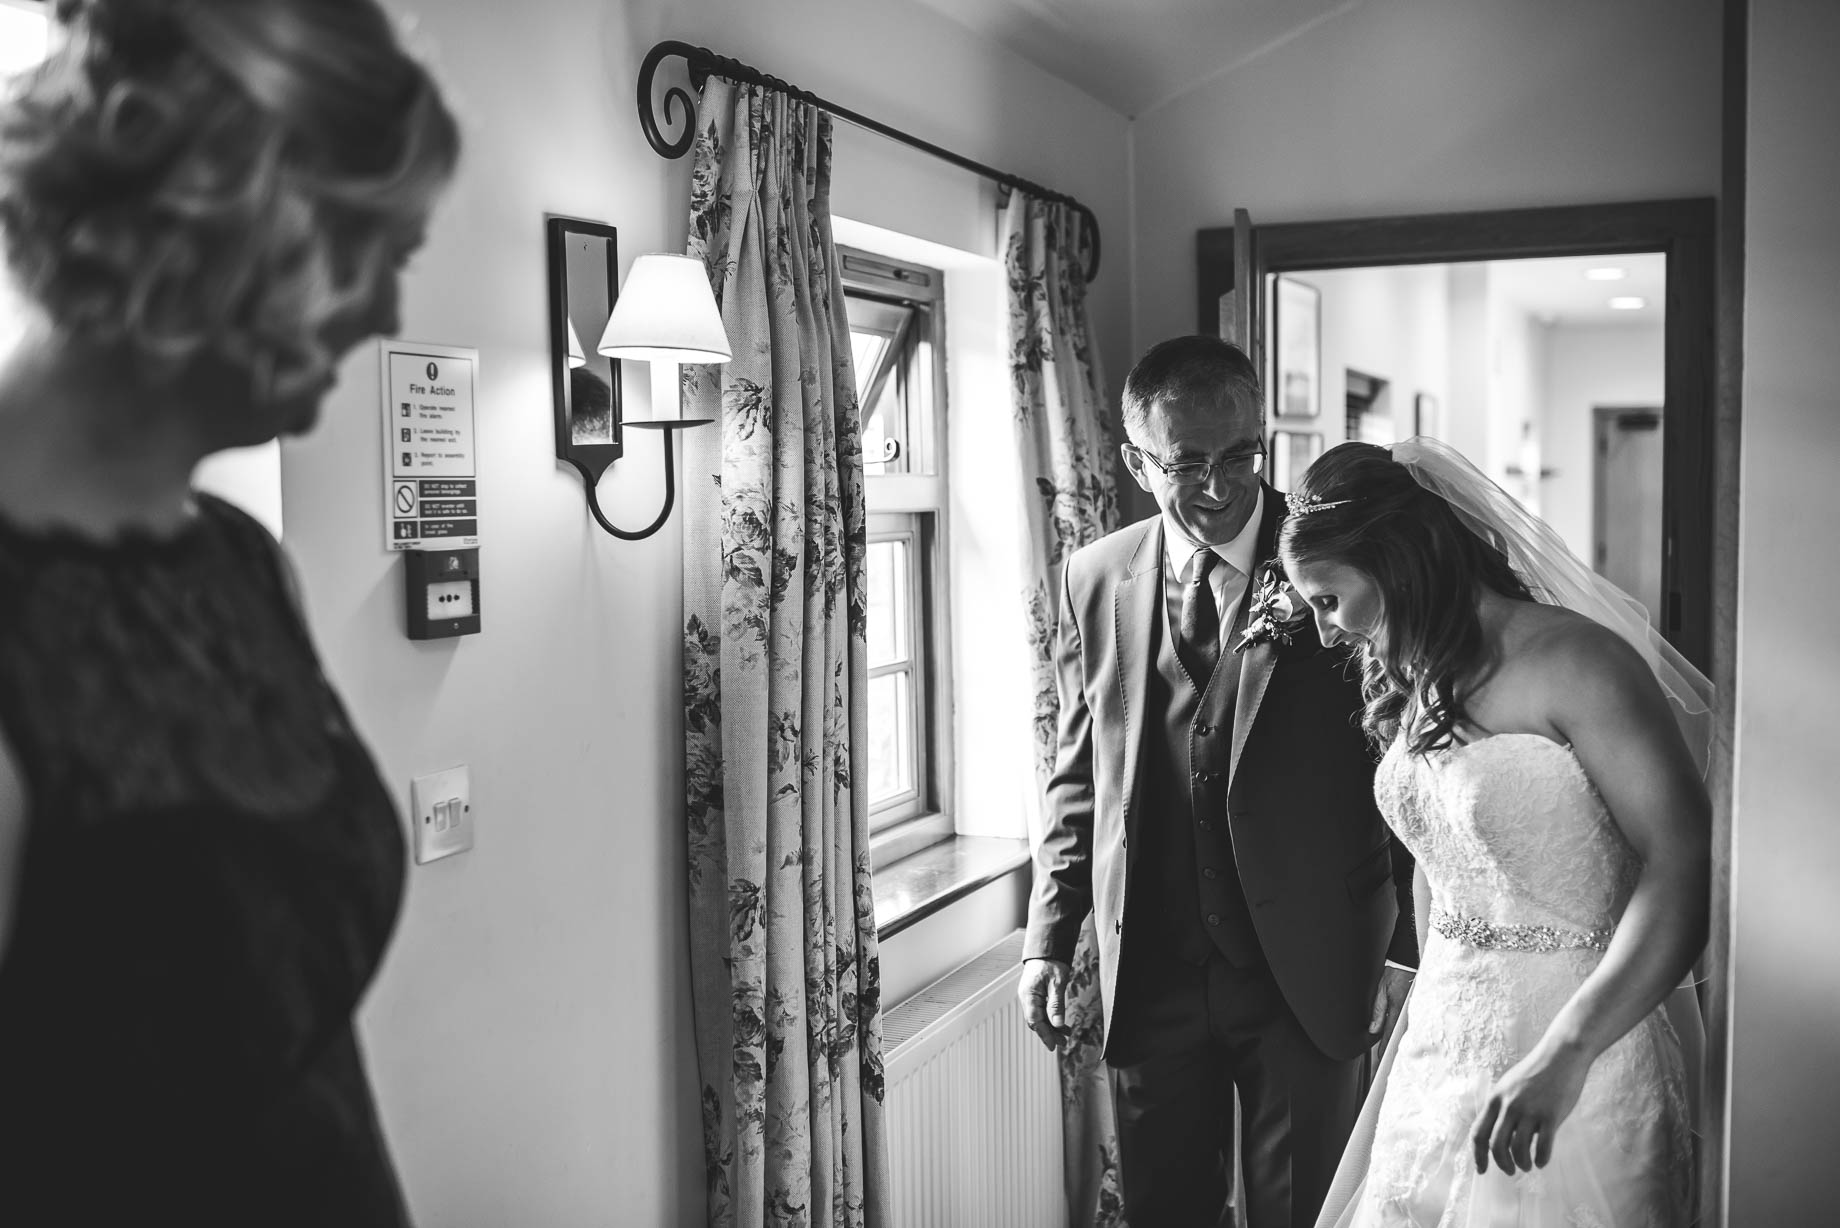 Gate Street Barn wedding photography - Guy Collier - Claire and Andy (46 of 192)